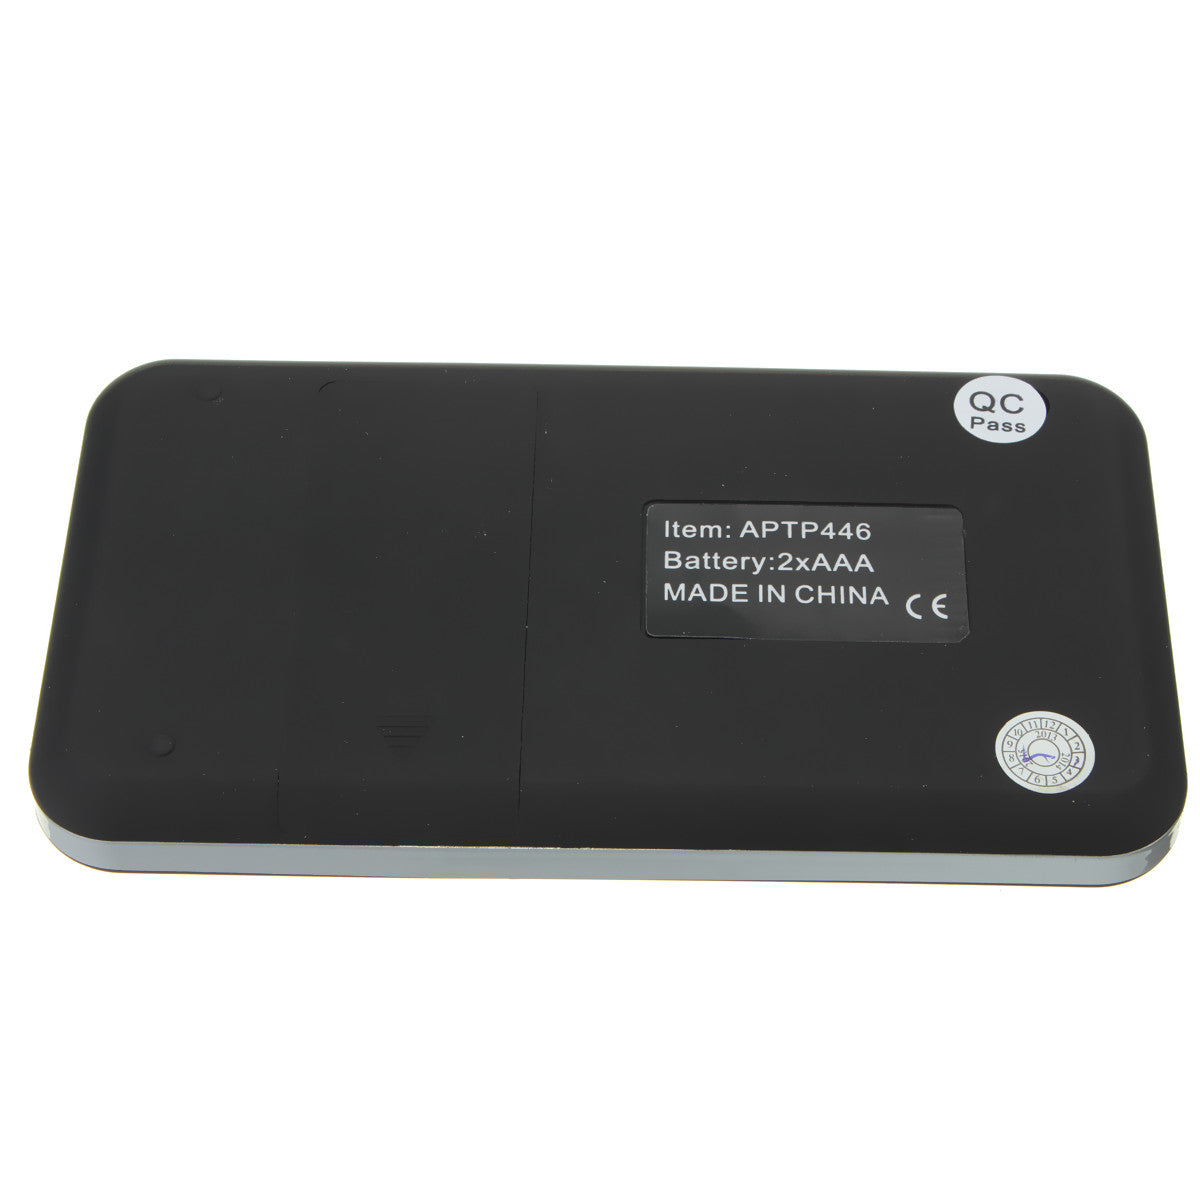 Digital Pocket Scale With Auto-Off Overload Protection